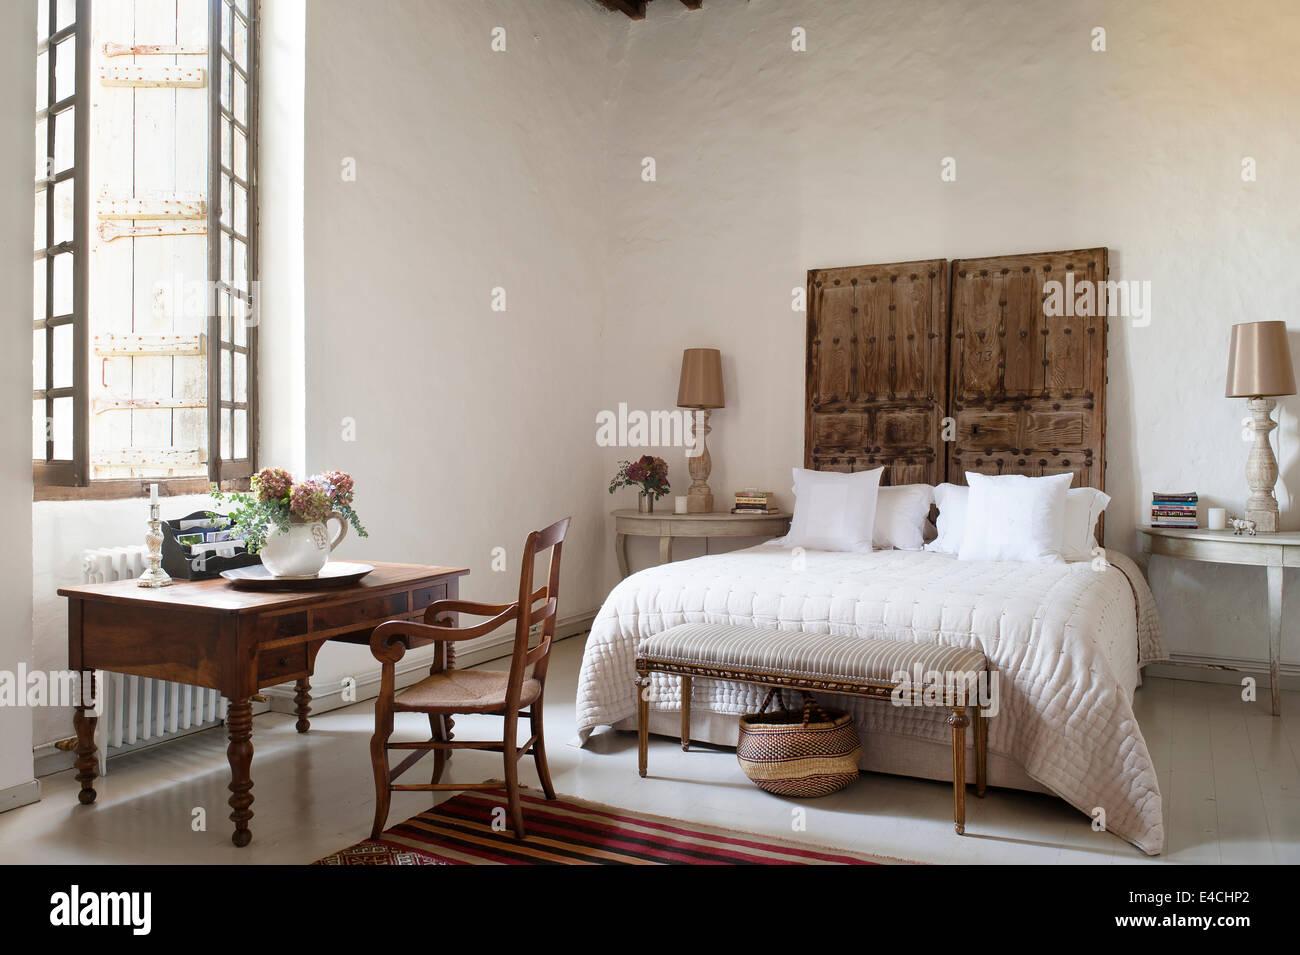 Pair Of Old Studded Doors Behind Bed In Spacious White Bedroom With Wooden Writing  Desk